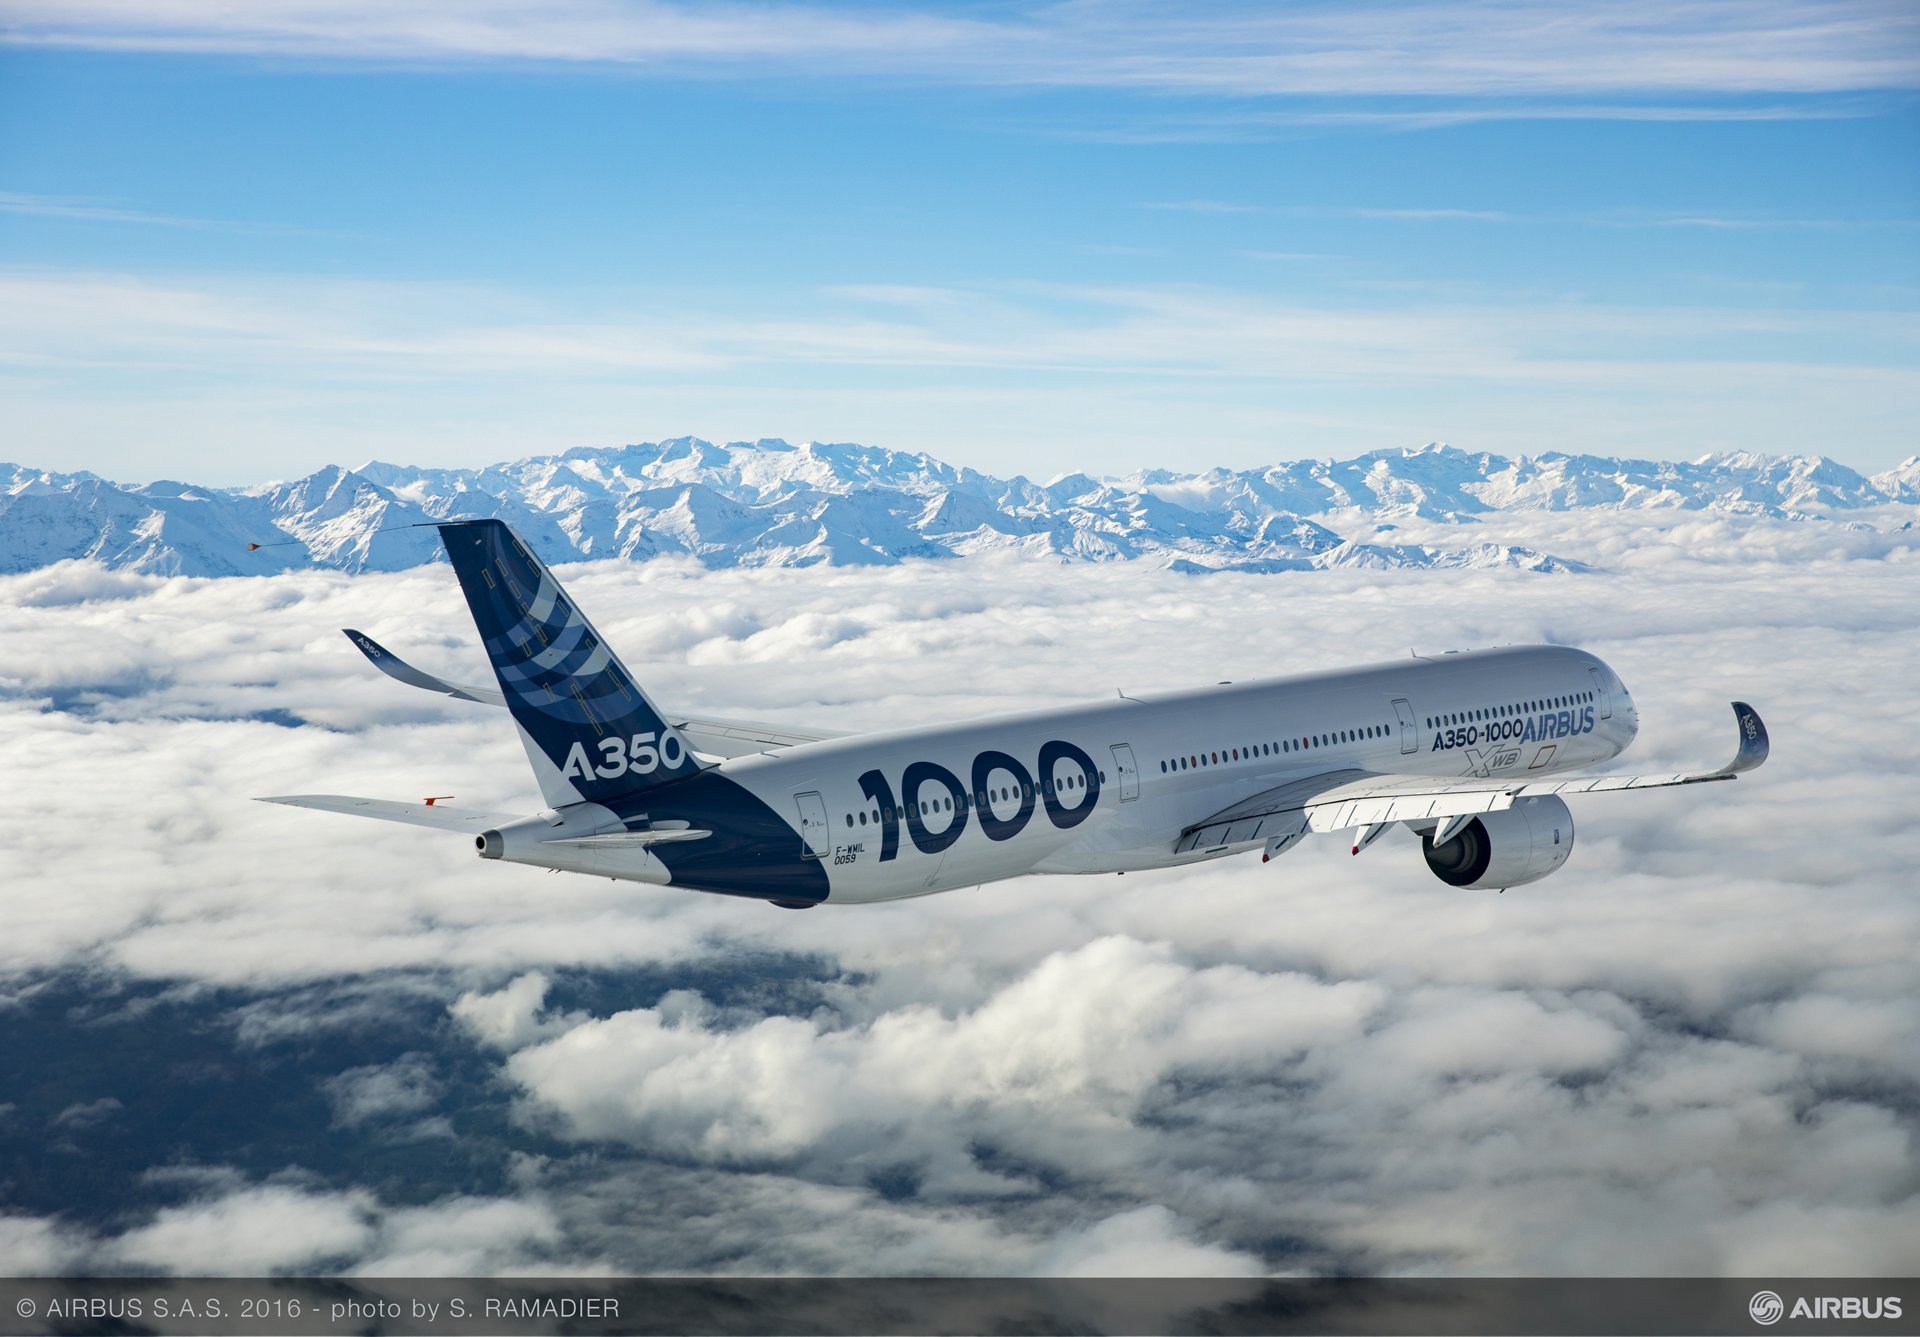 The A350-1000 is powered by two Trent XWB-97 turbofan jet engines – the most powerful version of Rolls-Royce's Trent XWB powerplants developed for the A350 XWB family